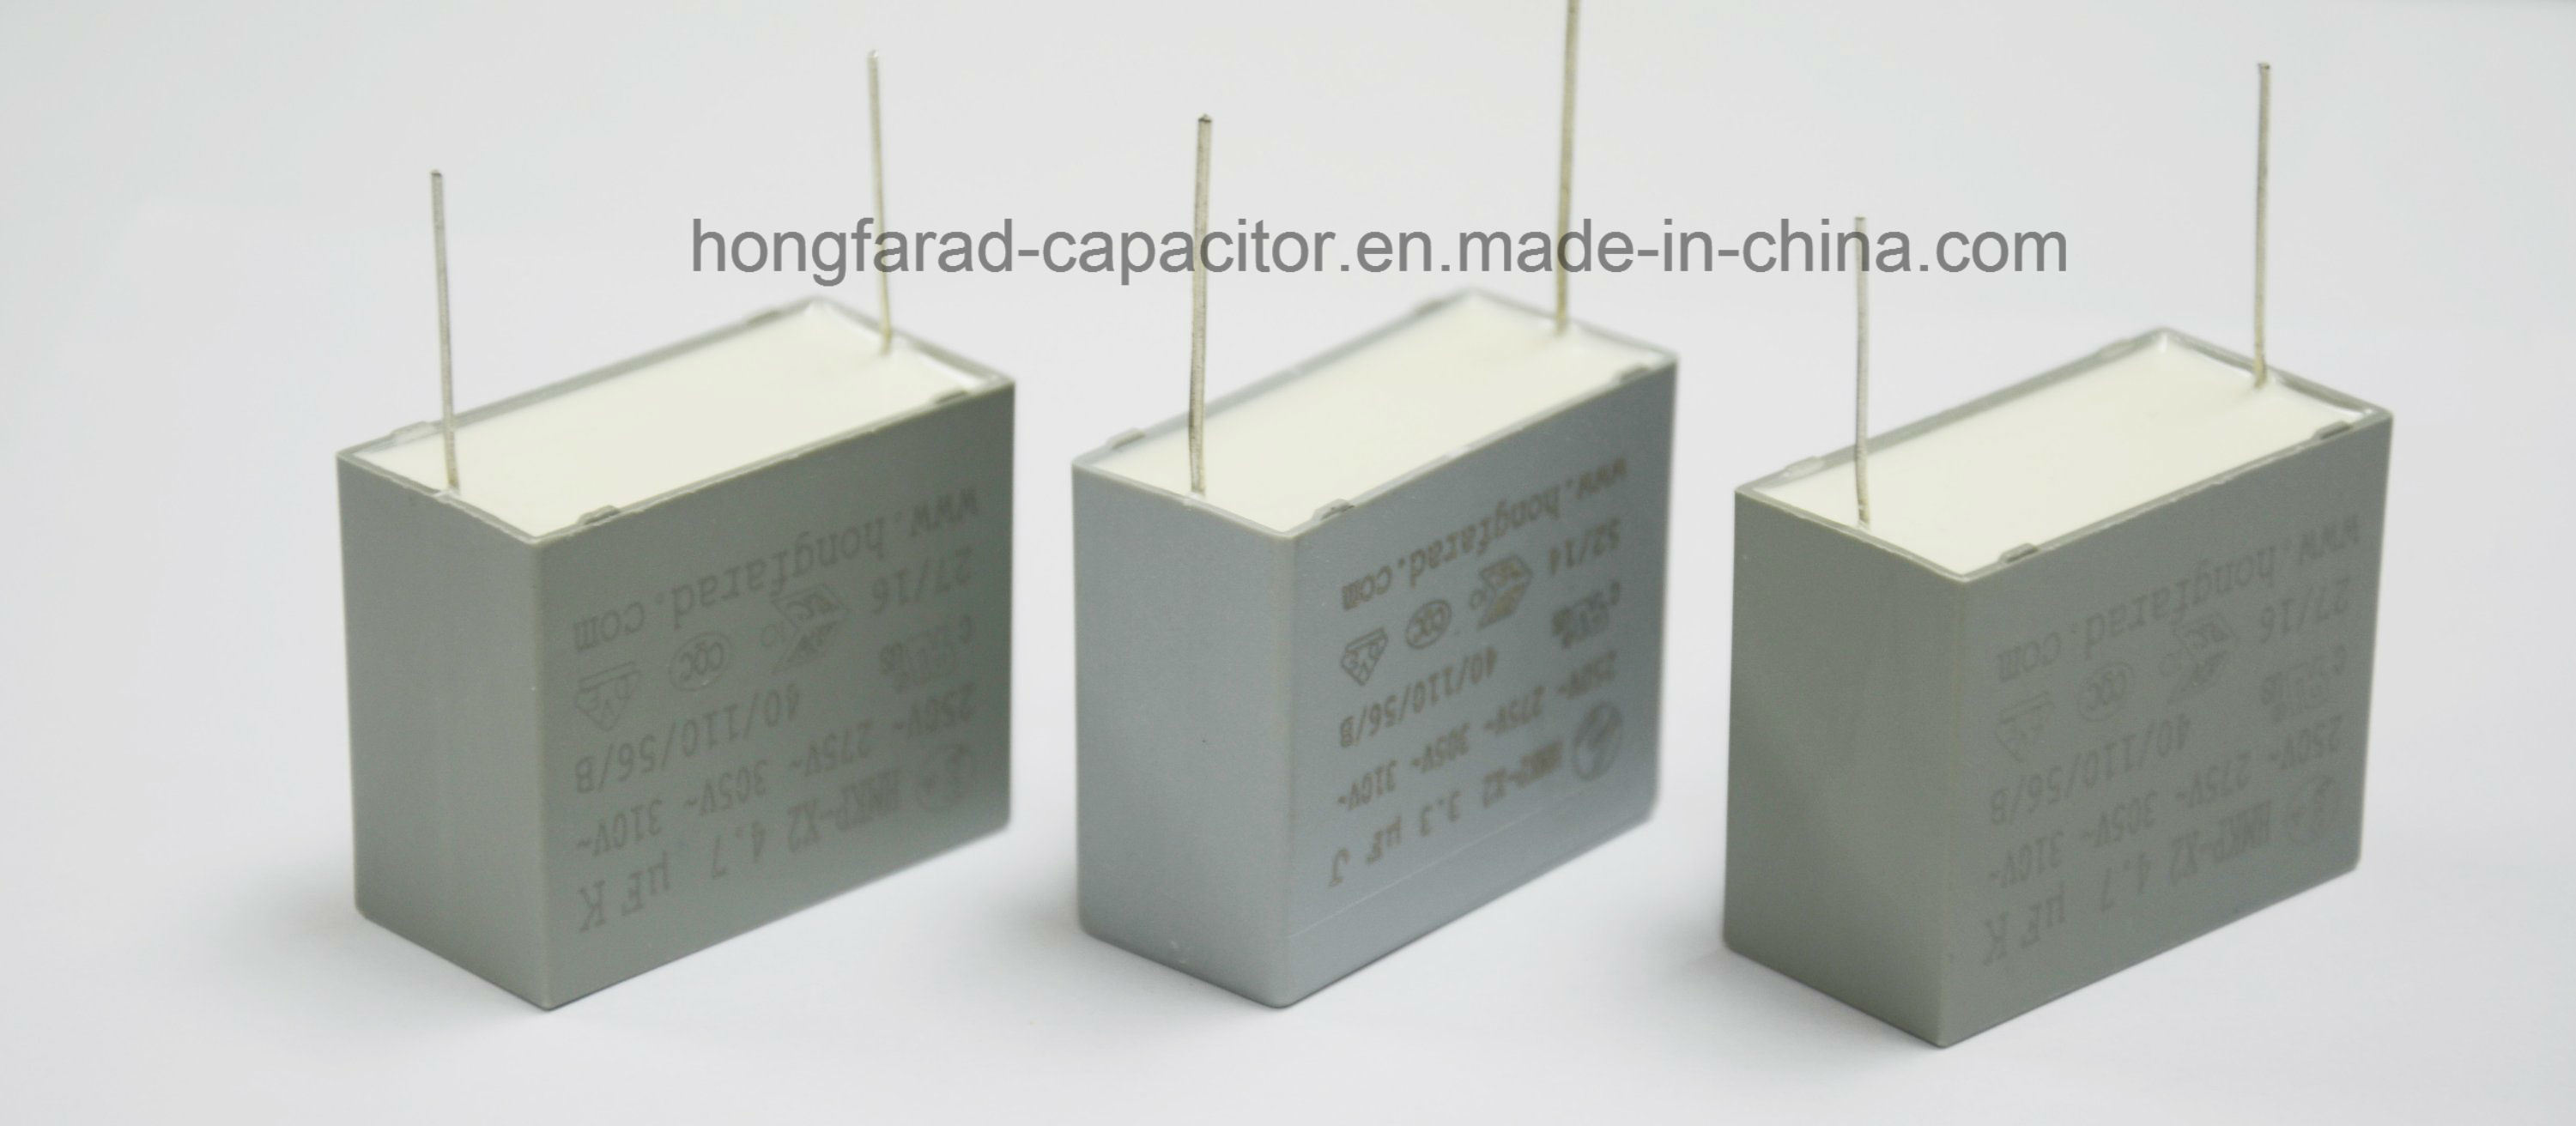 Cbb62 MKP X2 Film Capacitor for White Appliance.